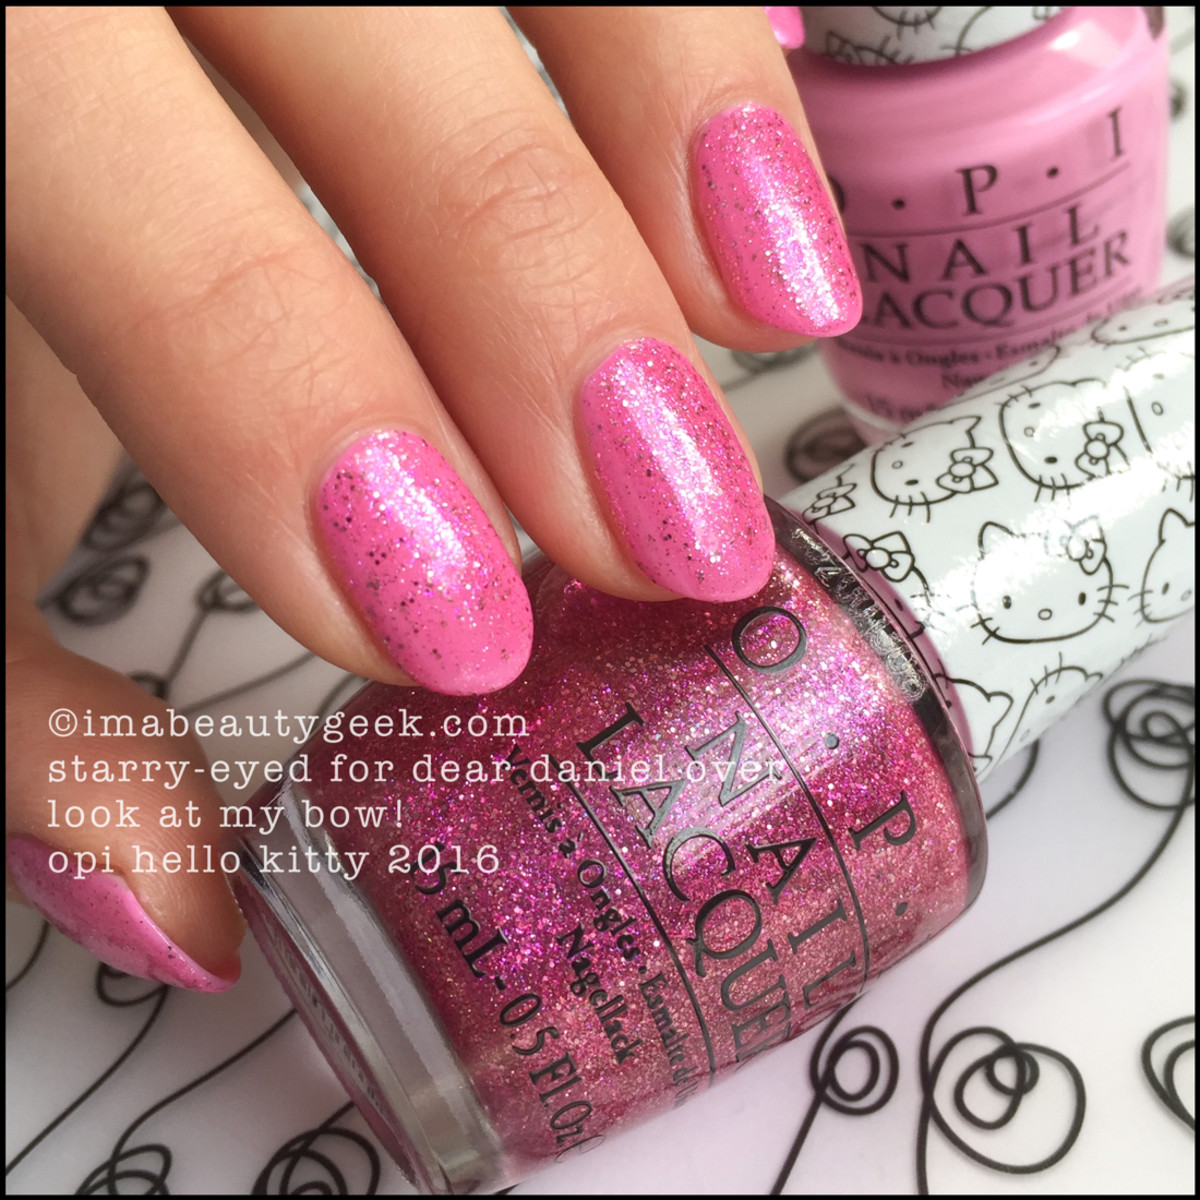 OPI Hello Kitty 2016 Collection_OPI Starry Eyed for Dear Daniel over OPI Look at my Bow